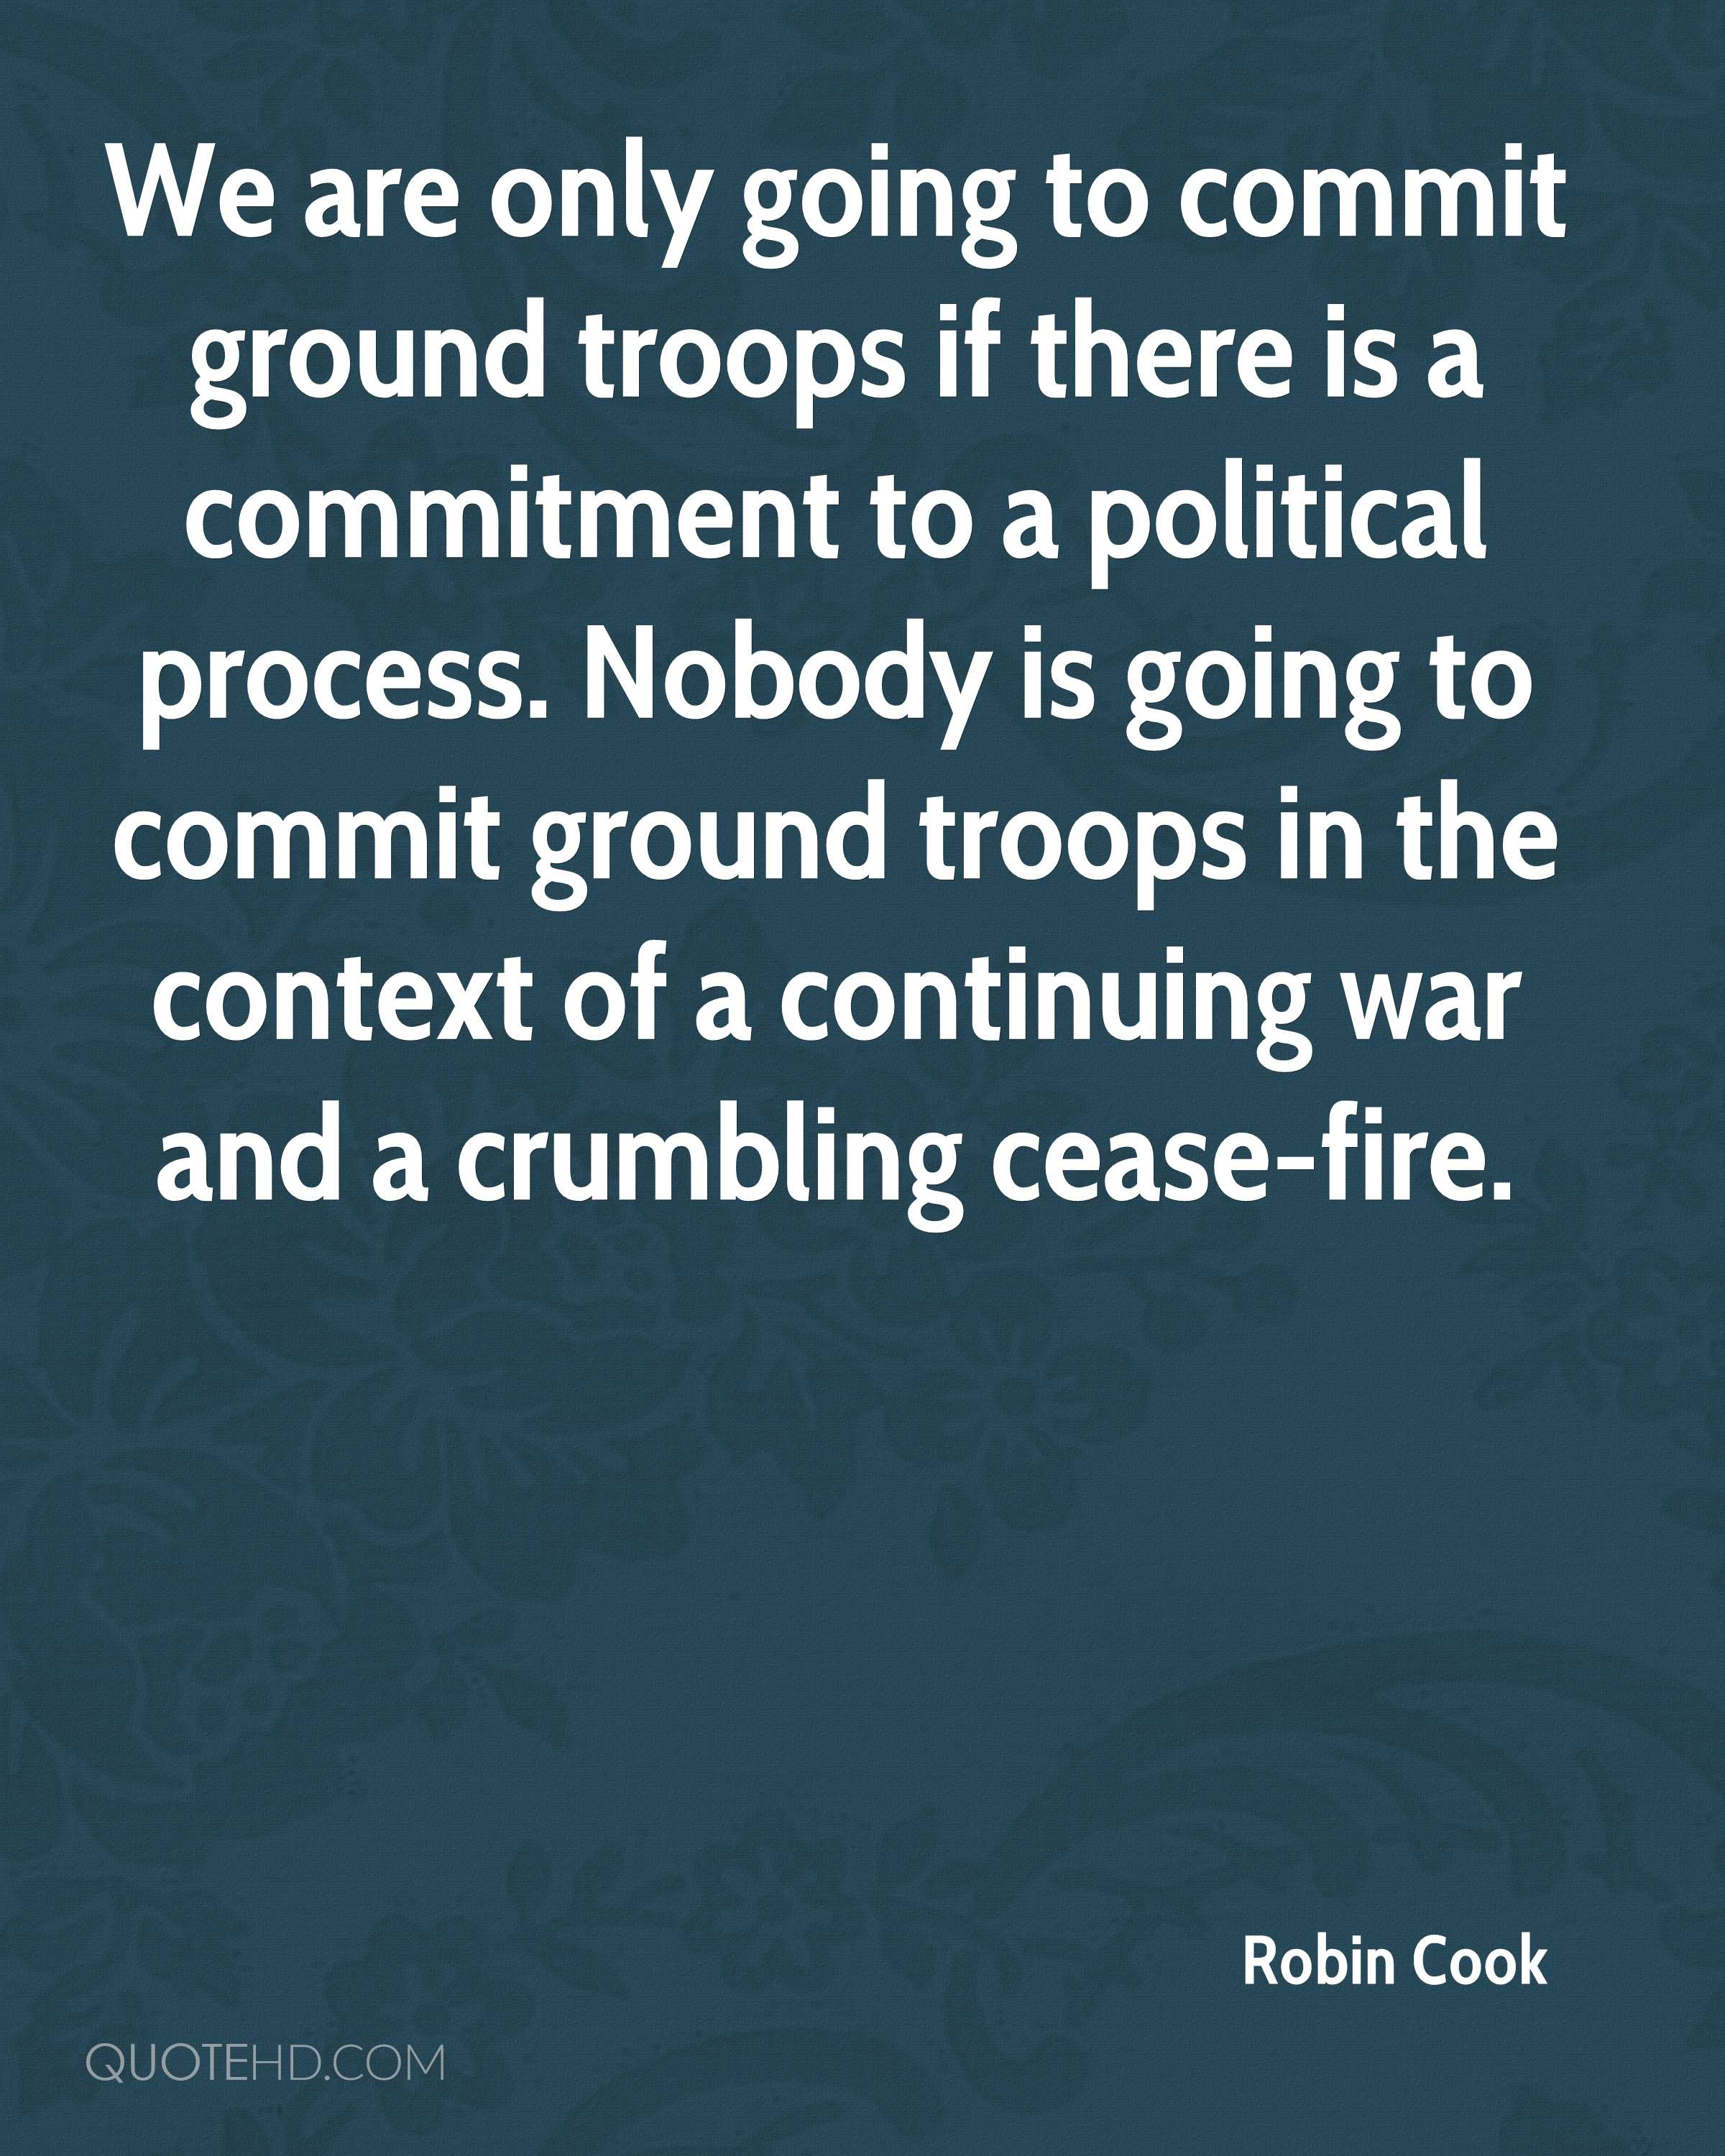 We are only going to commit ground troops if there is a commitment to a political process. Nobody is going to commit ground troops in the context of a continuing war and a crumbling cease-fire.